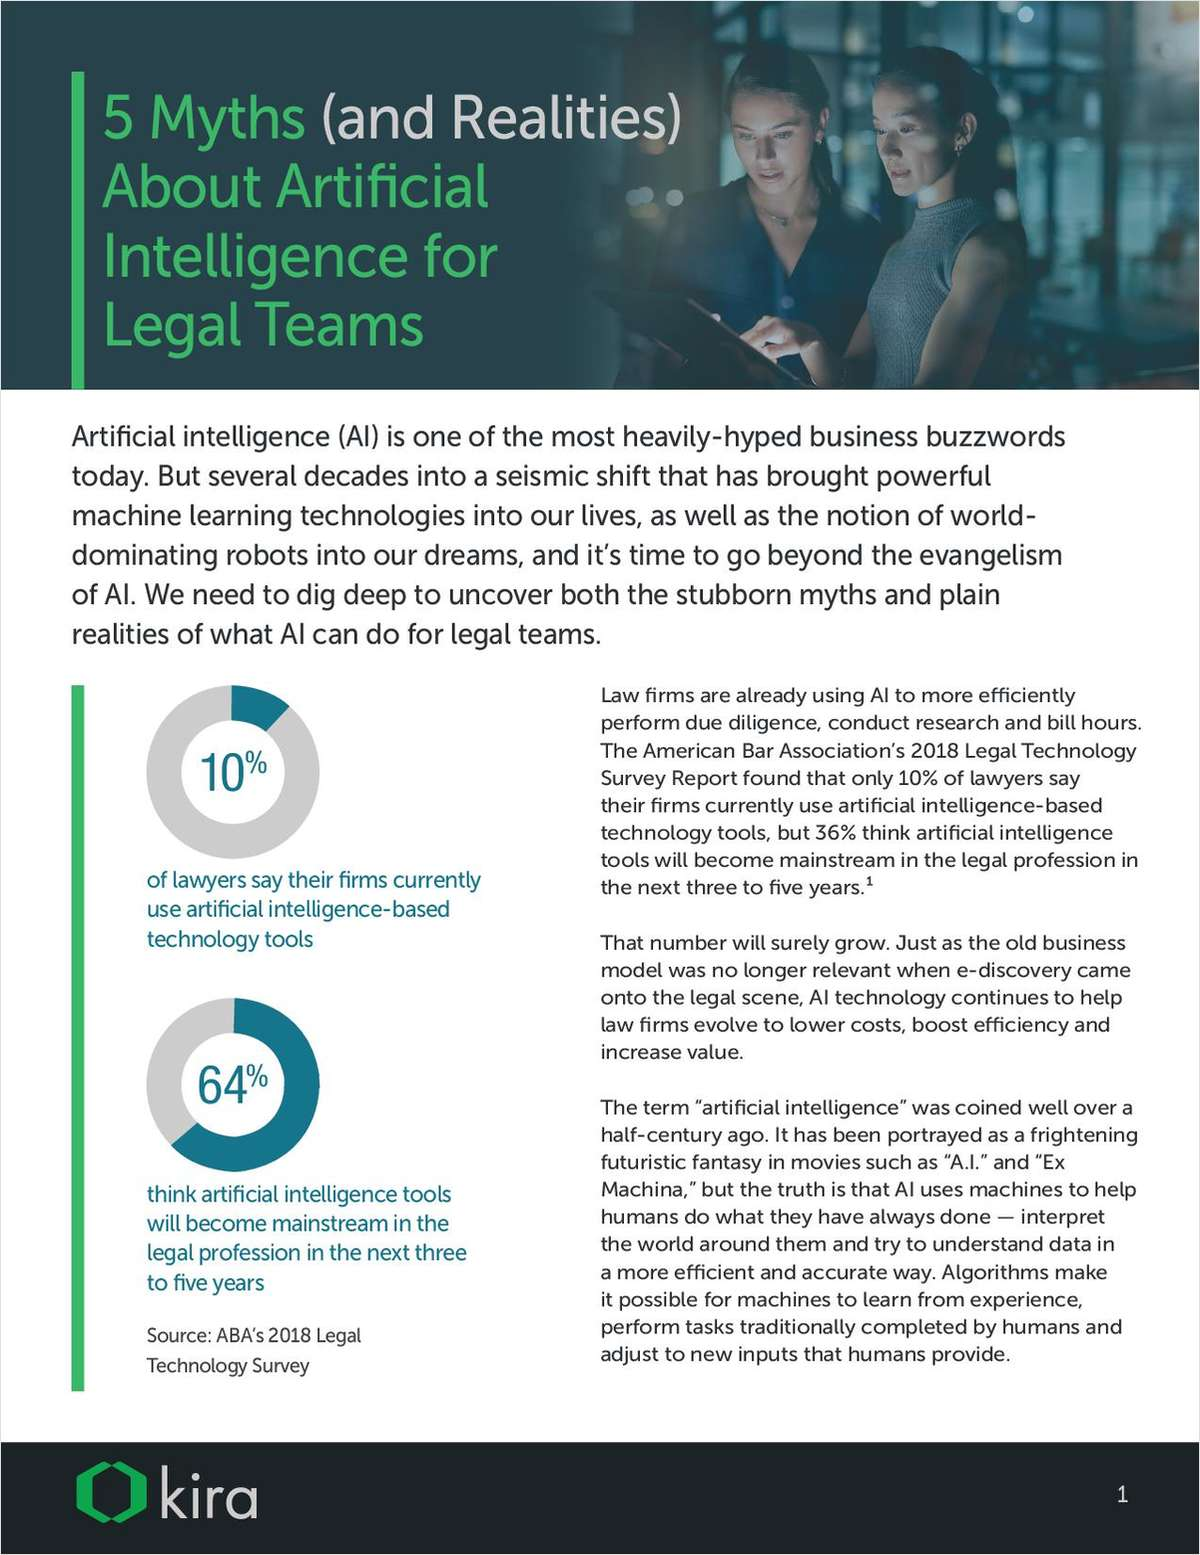 5 Myths & Realities About Artificial Intelligence for Legal Teams